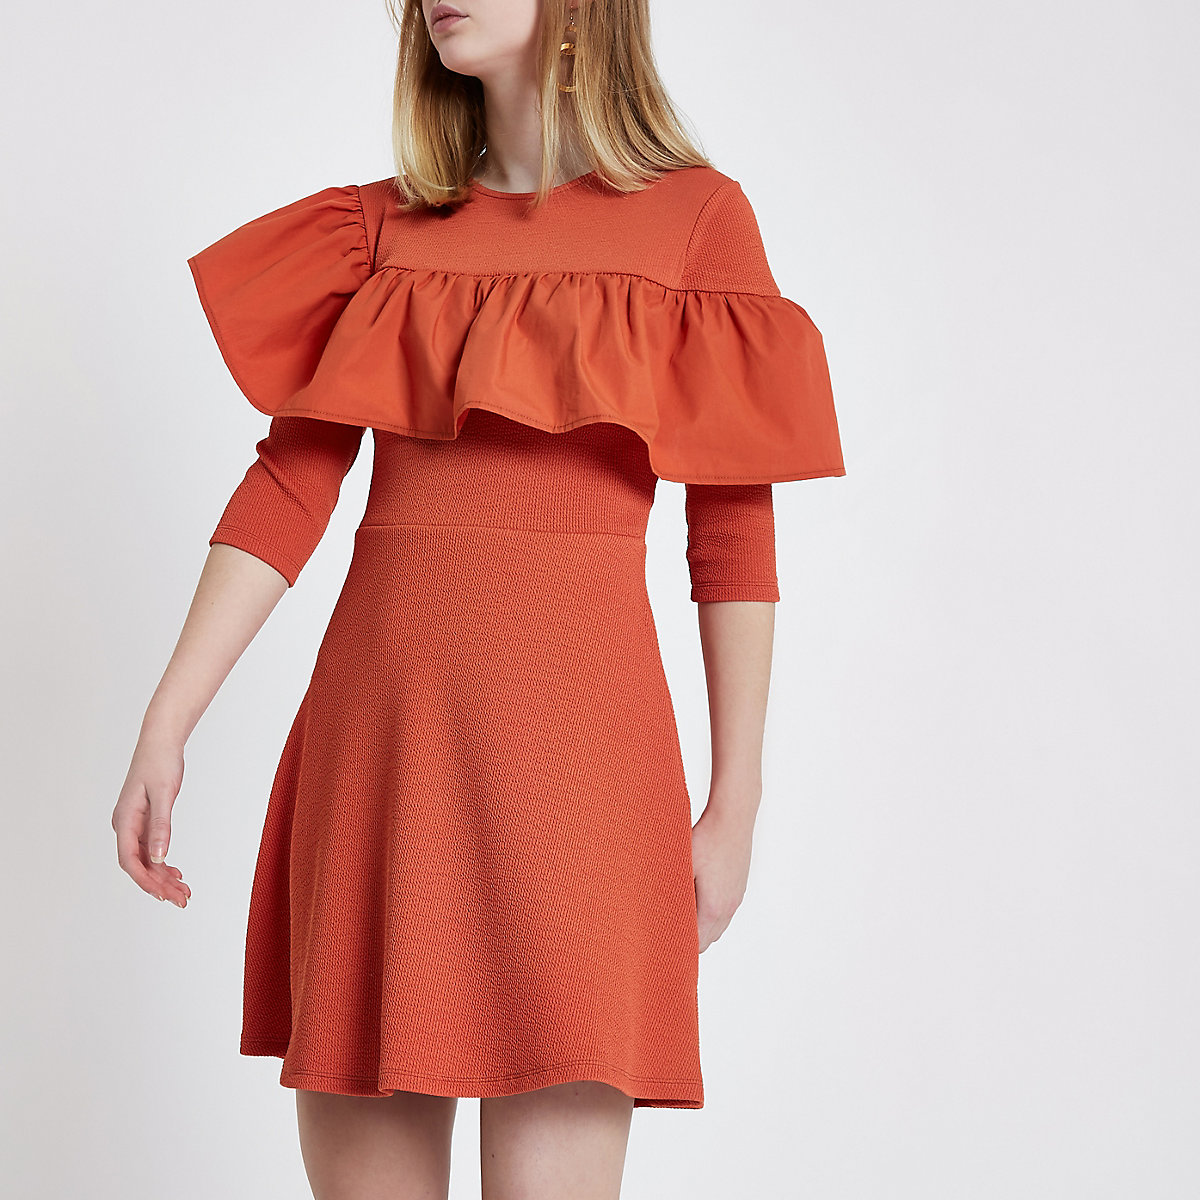 Orange poplin frill skater dress